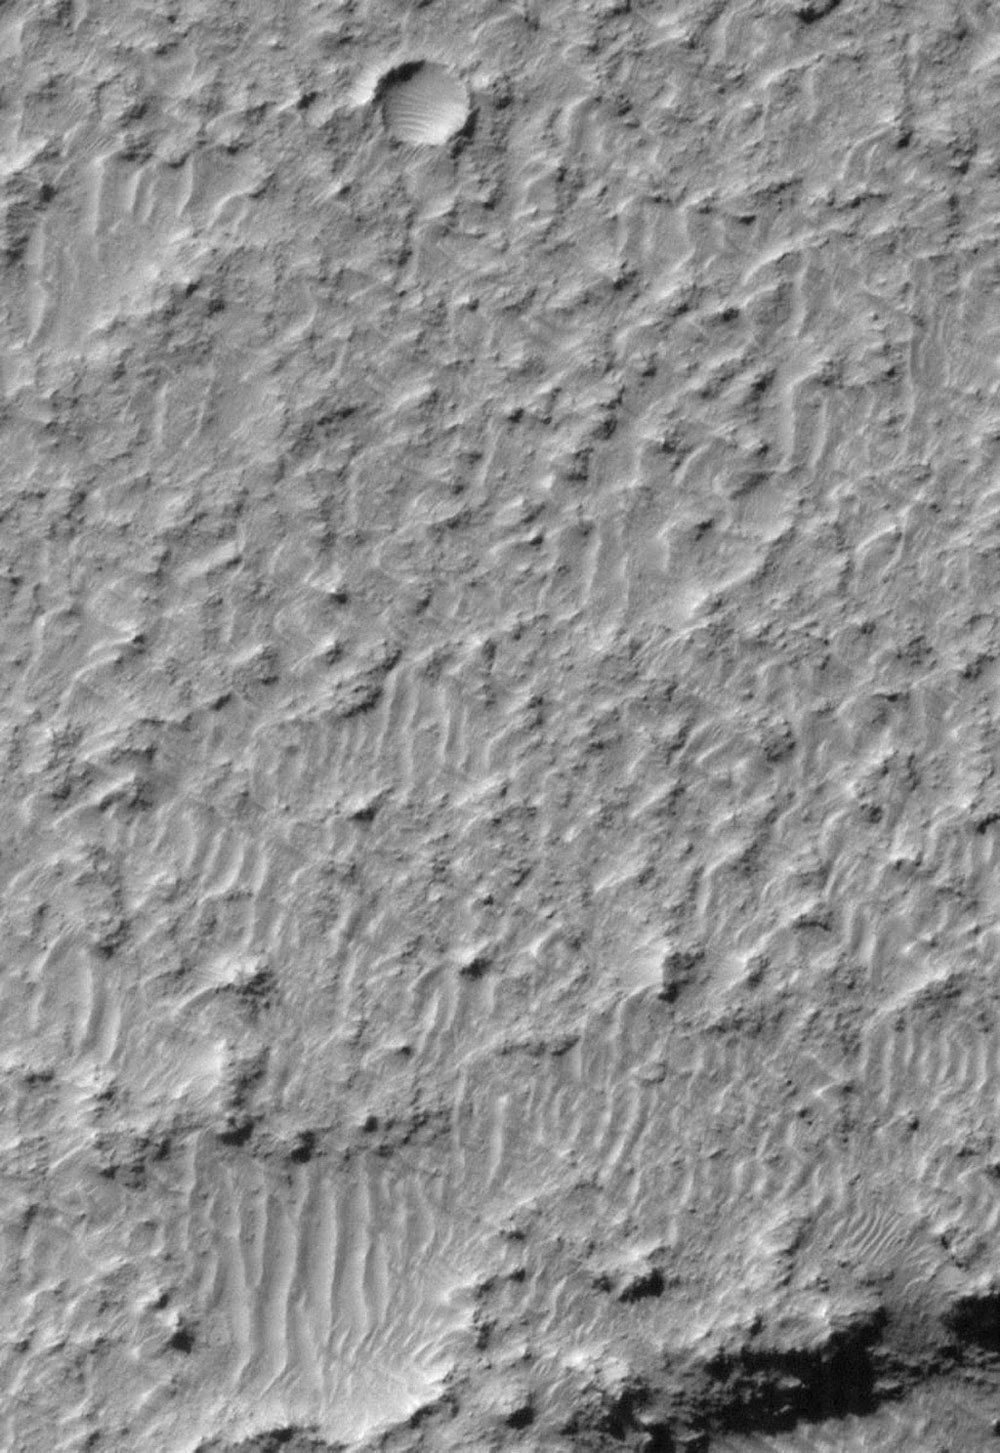 NASA's Mars Global Surveyor shows a view of a tiny portion of the southeastern floor of Mariner Crater pocked with craters.